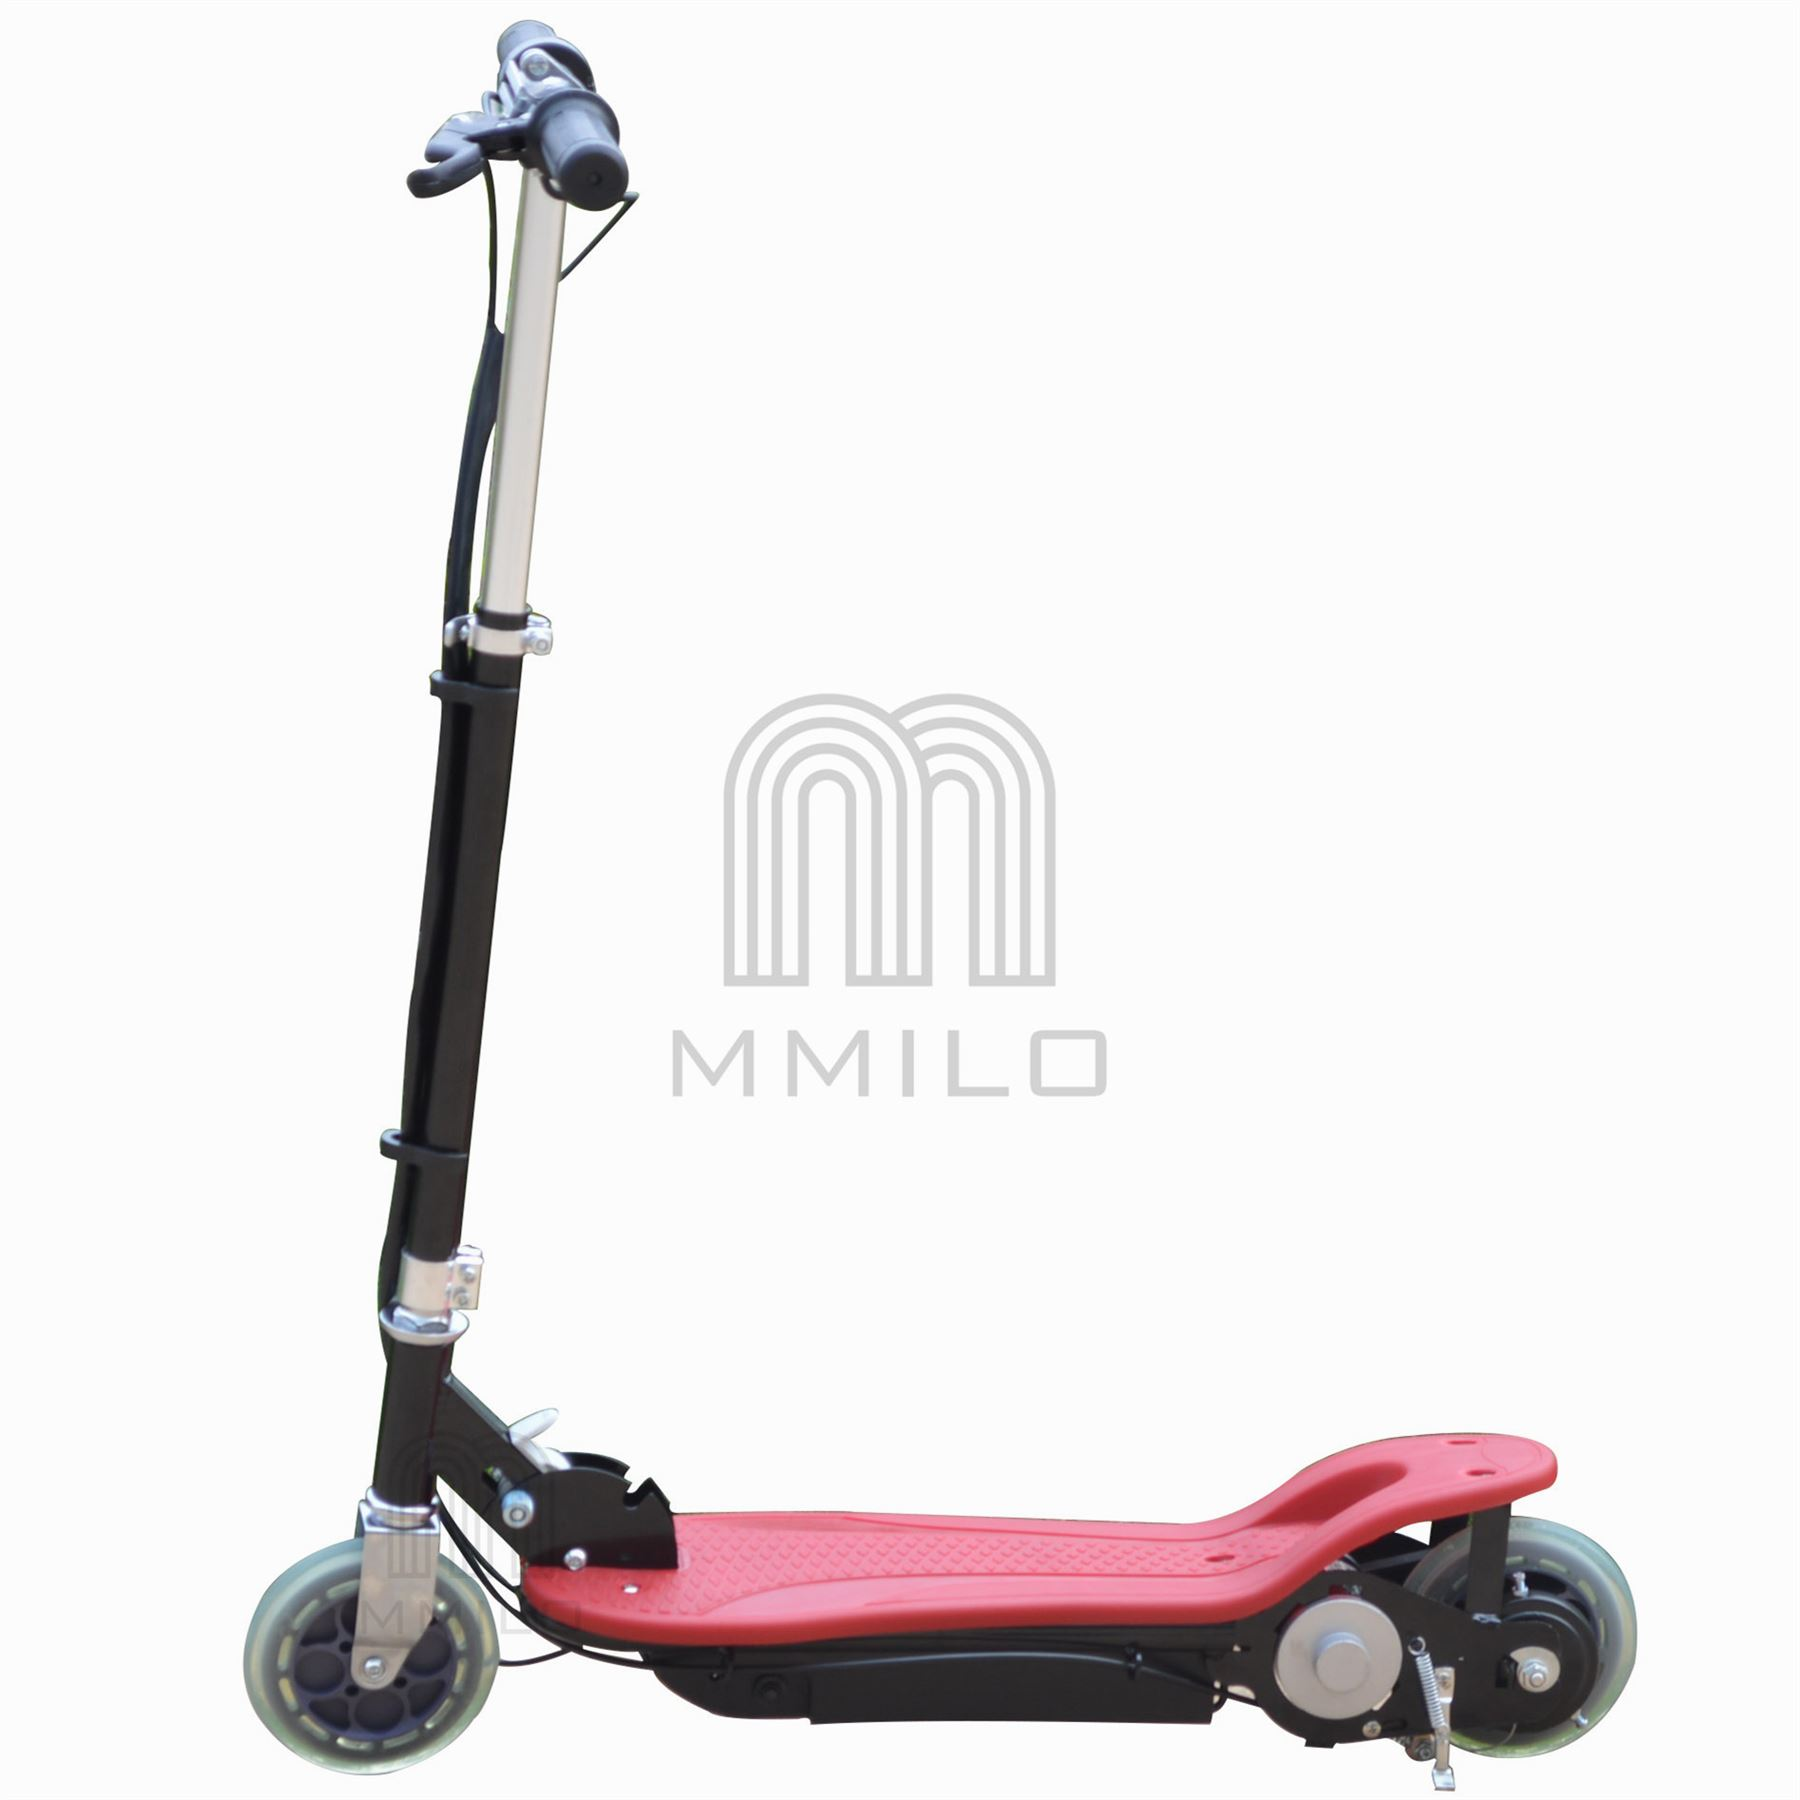 new electric e scooter ride on rechargeable battery height adjustable 120w 24v ebay. Black Bedroom Furniture Sets. Home Design Ideas